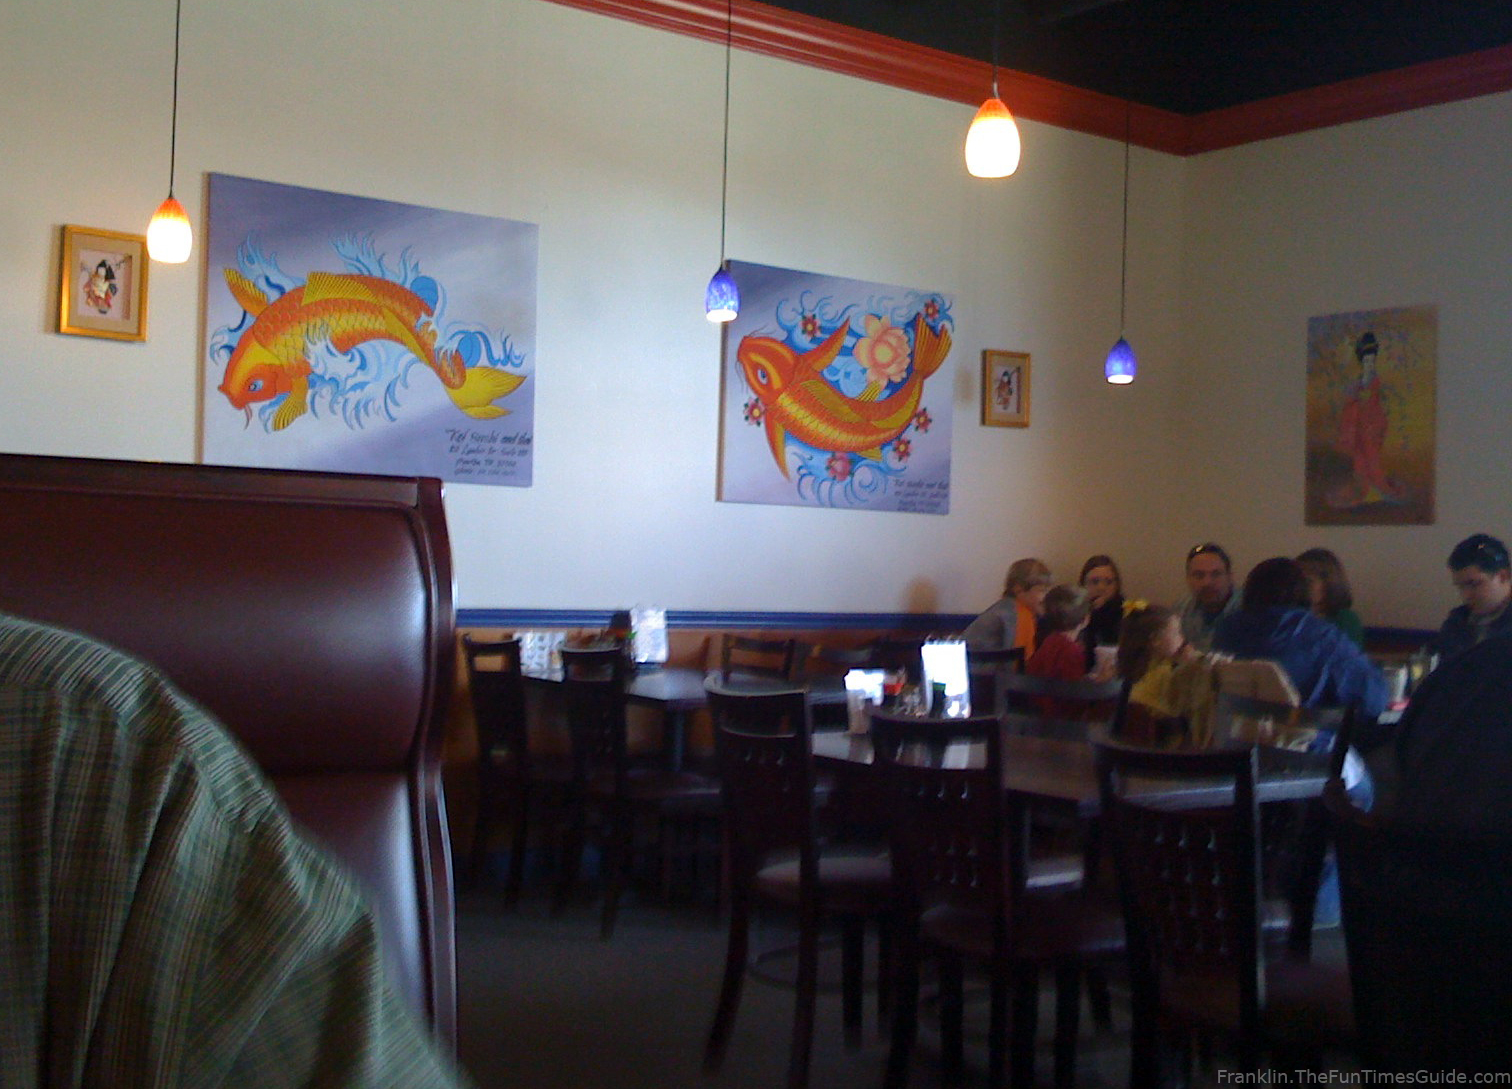 Marvelous Koi Thai Restaurant Fish Artwork